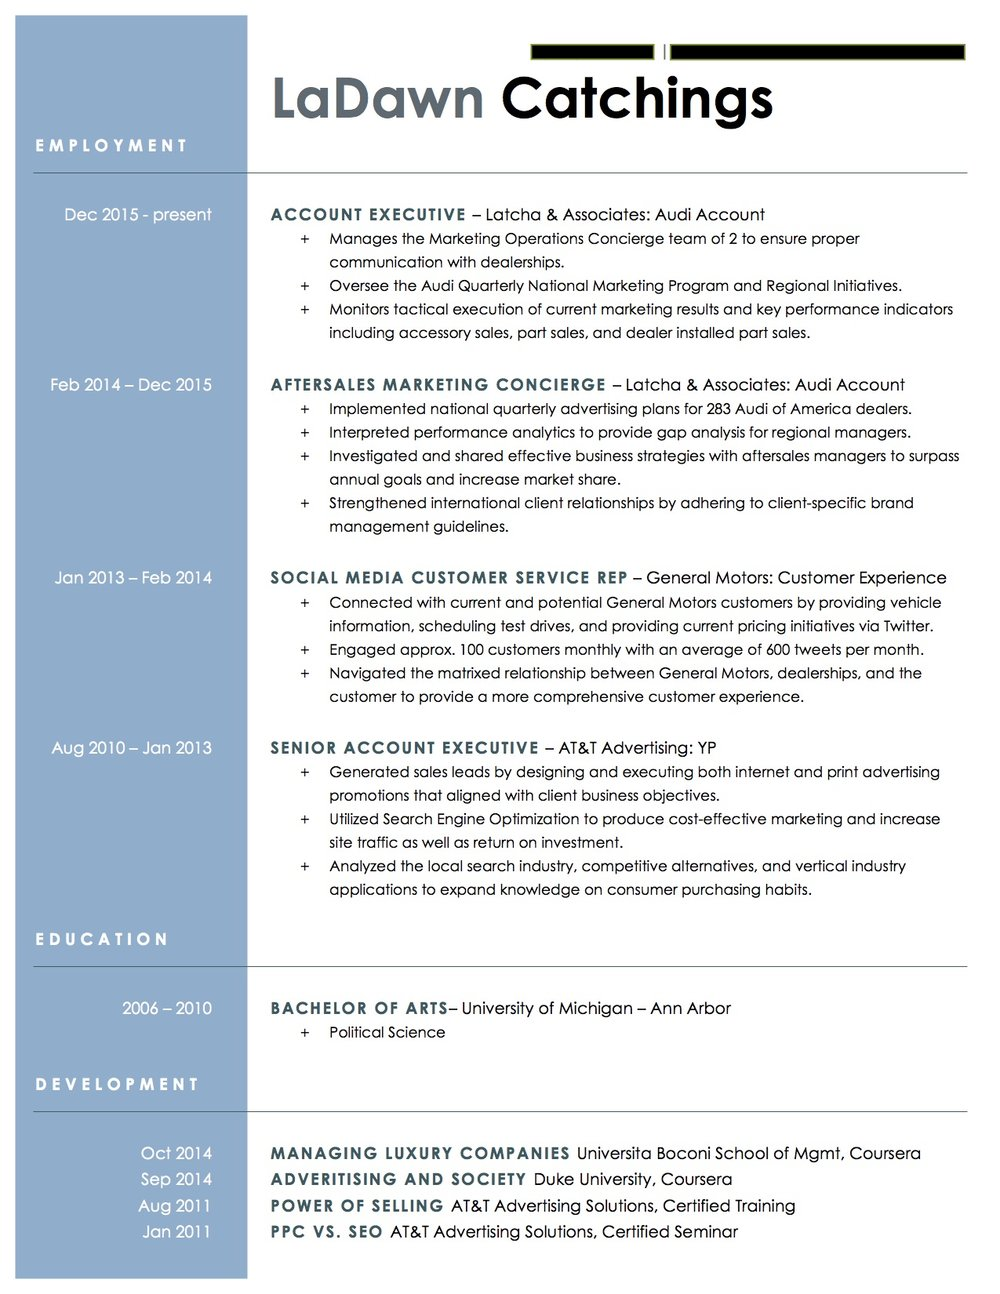 Client Resume #2. Click to enlarge.